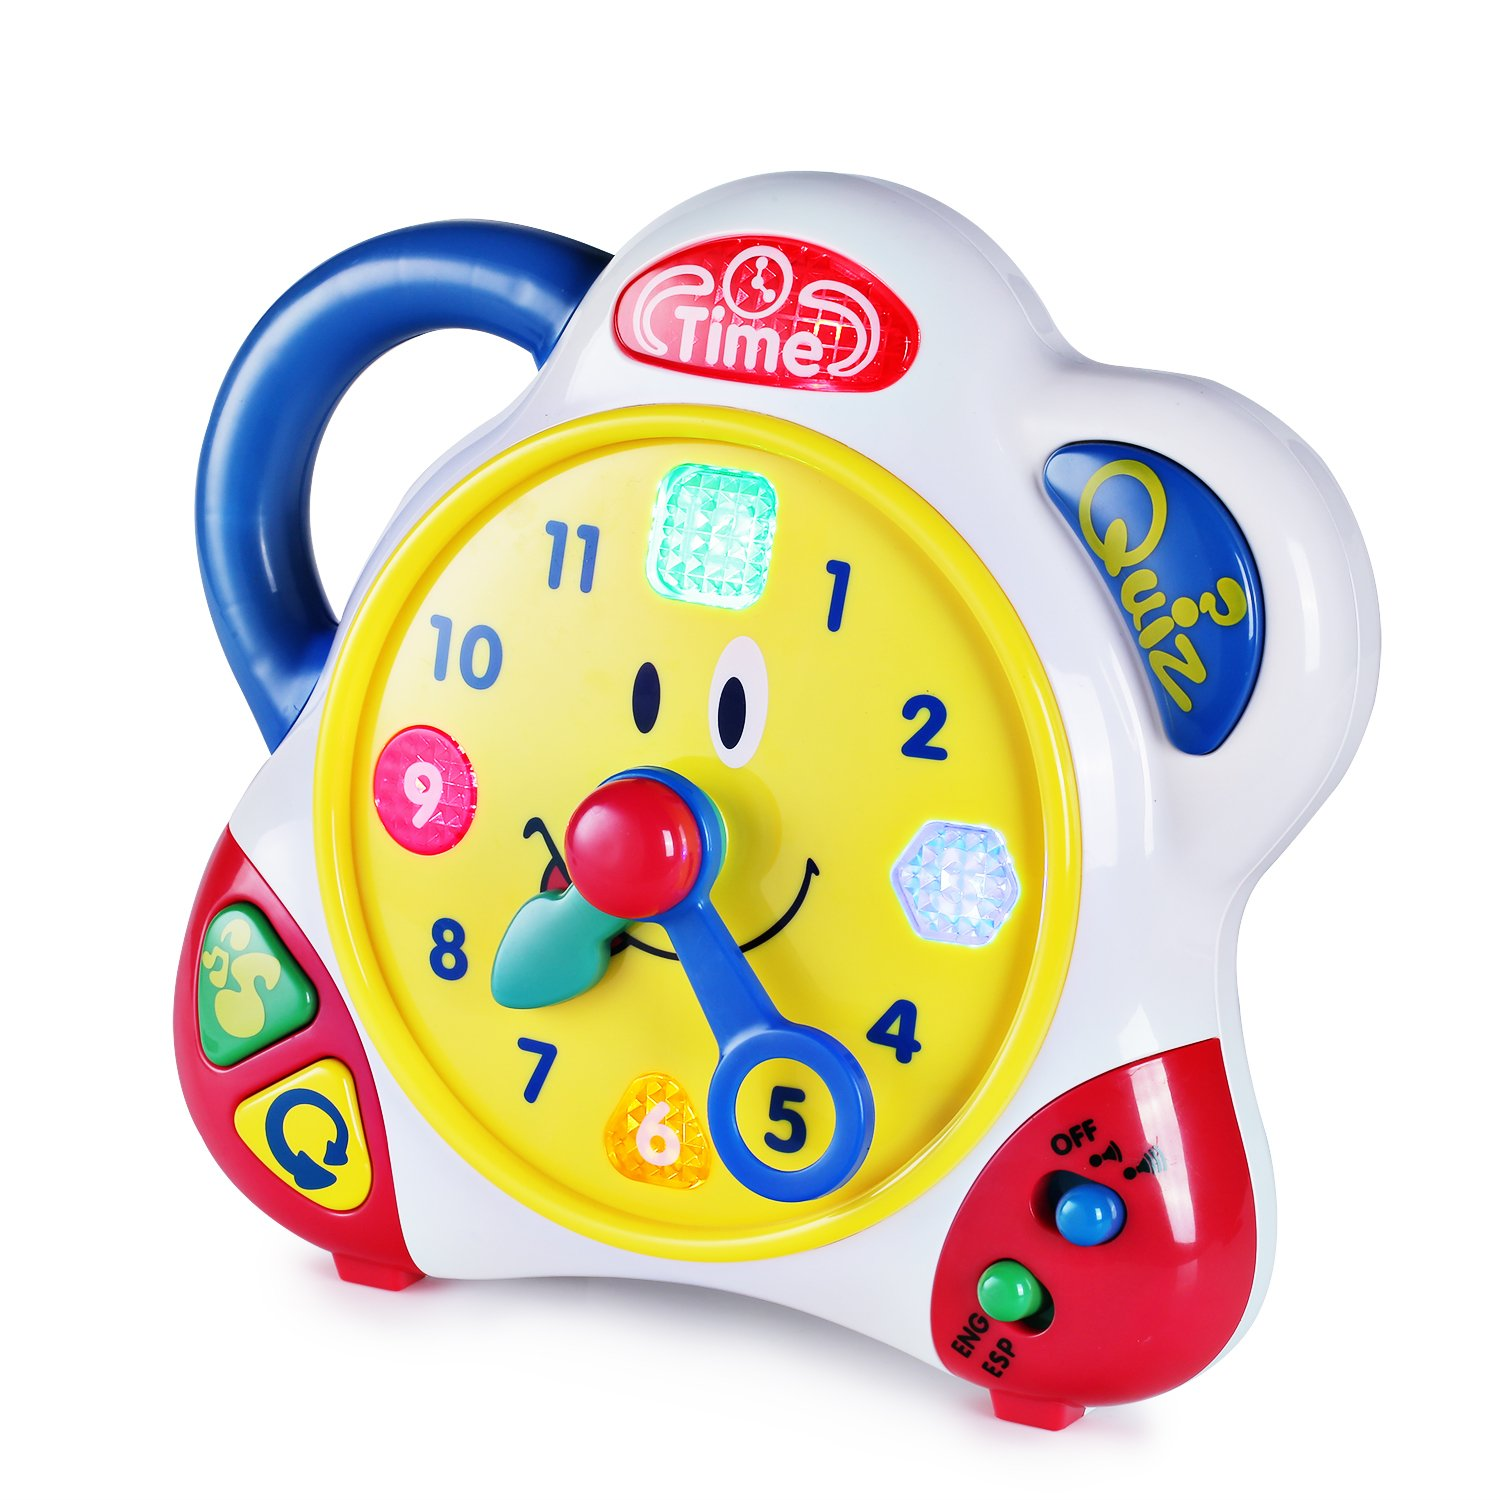 SainSmart Jr. HAP-P-KID Teaching Clock Time Learning for Kids, Happy Hour Learning Toys with Quiz Mode and Interactive Music